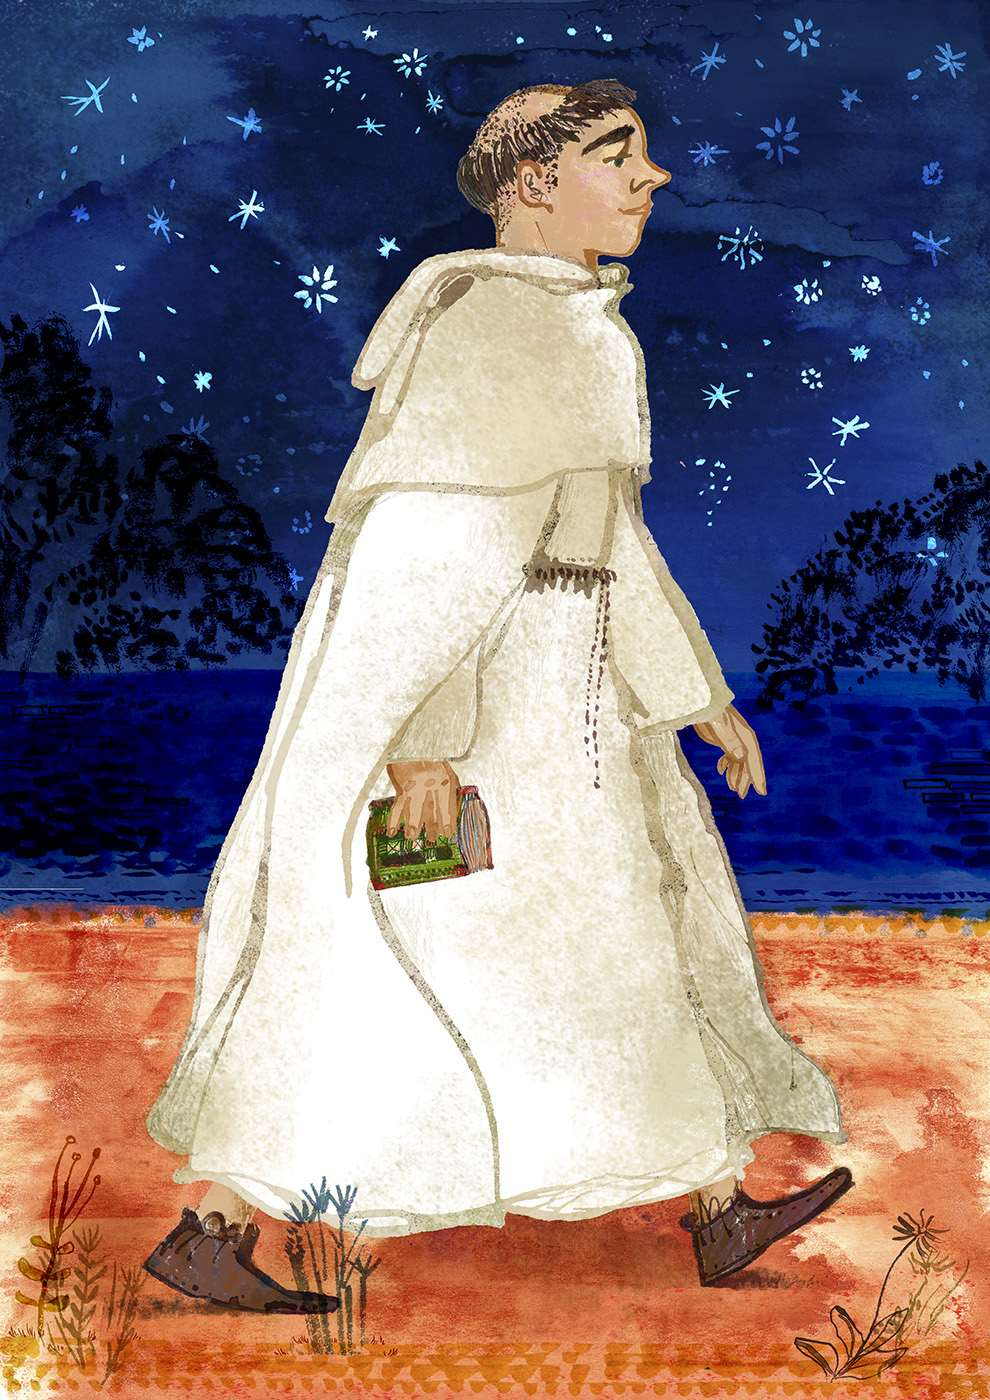 Jill Calder, Textural handrawn illustration of a monk